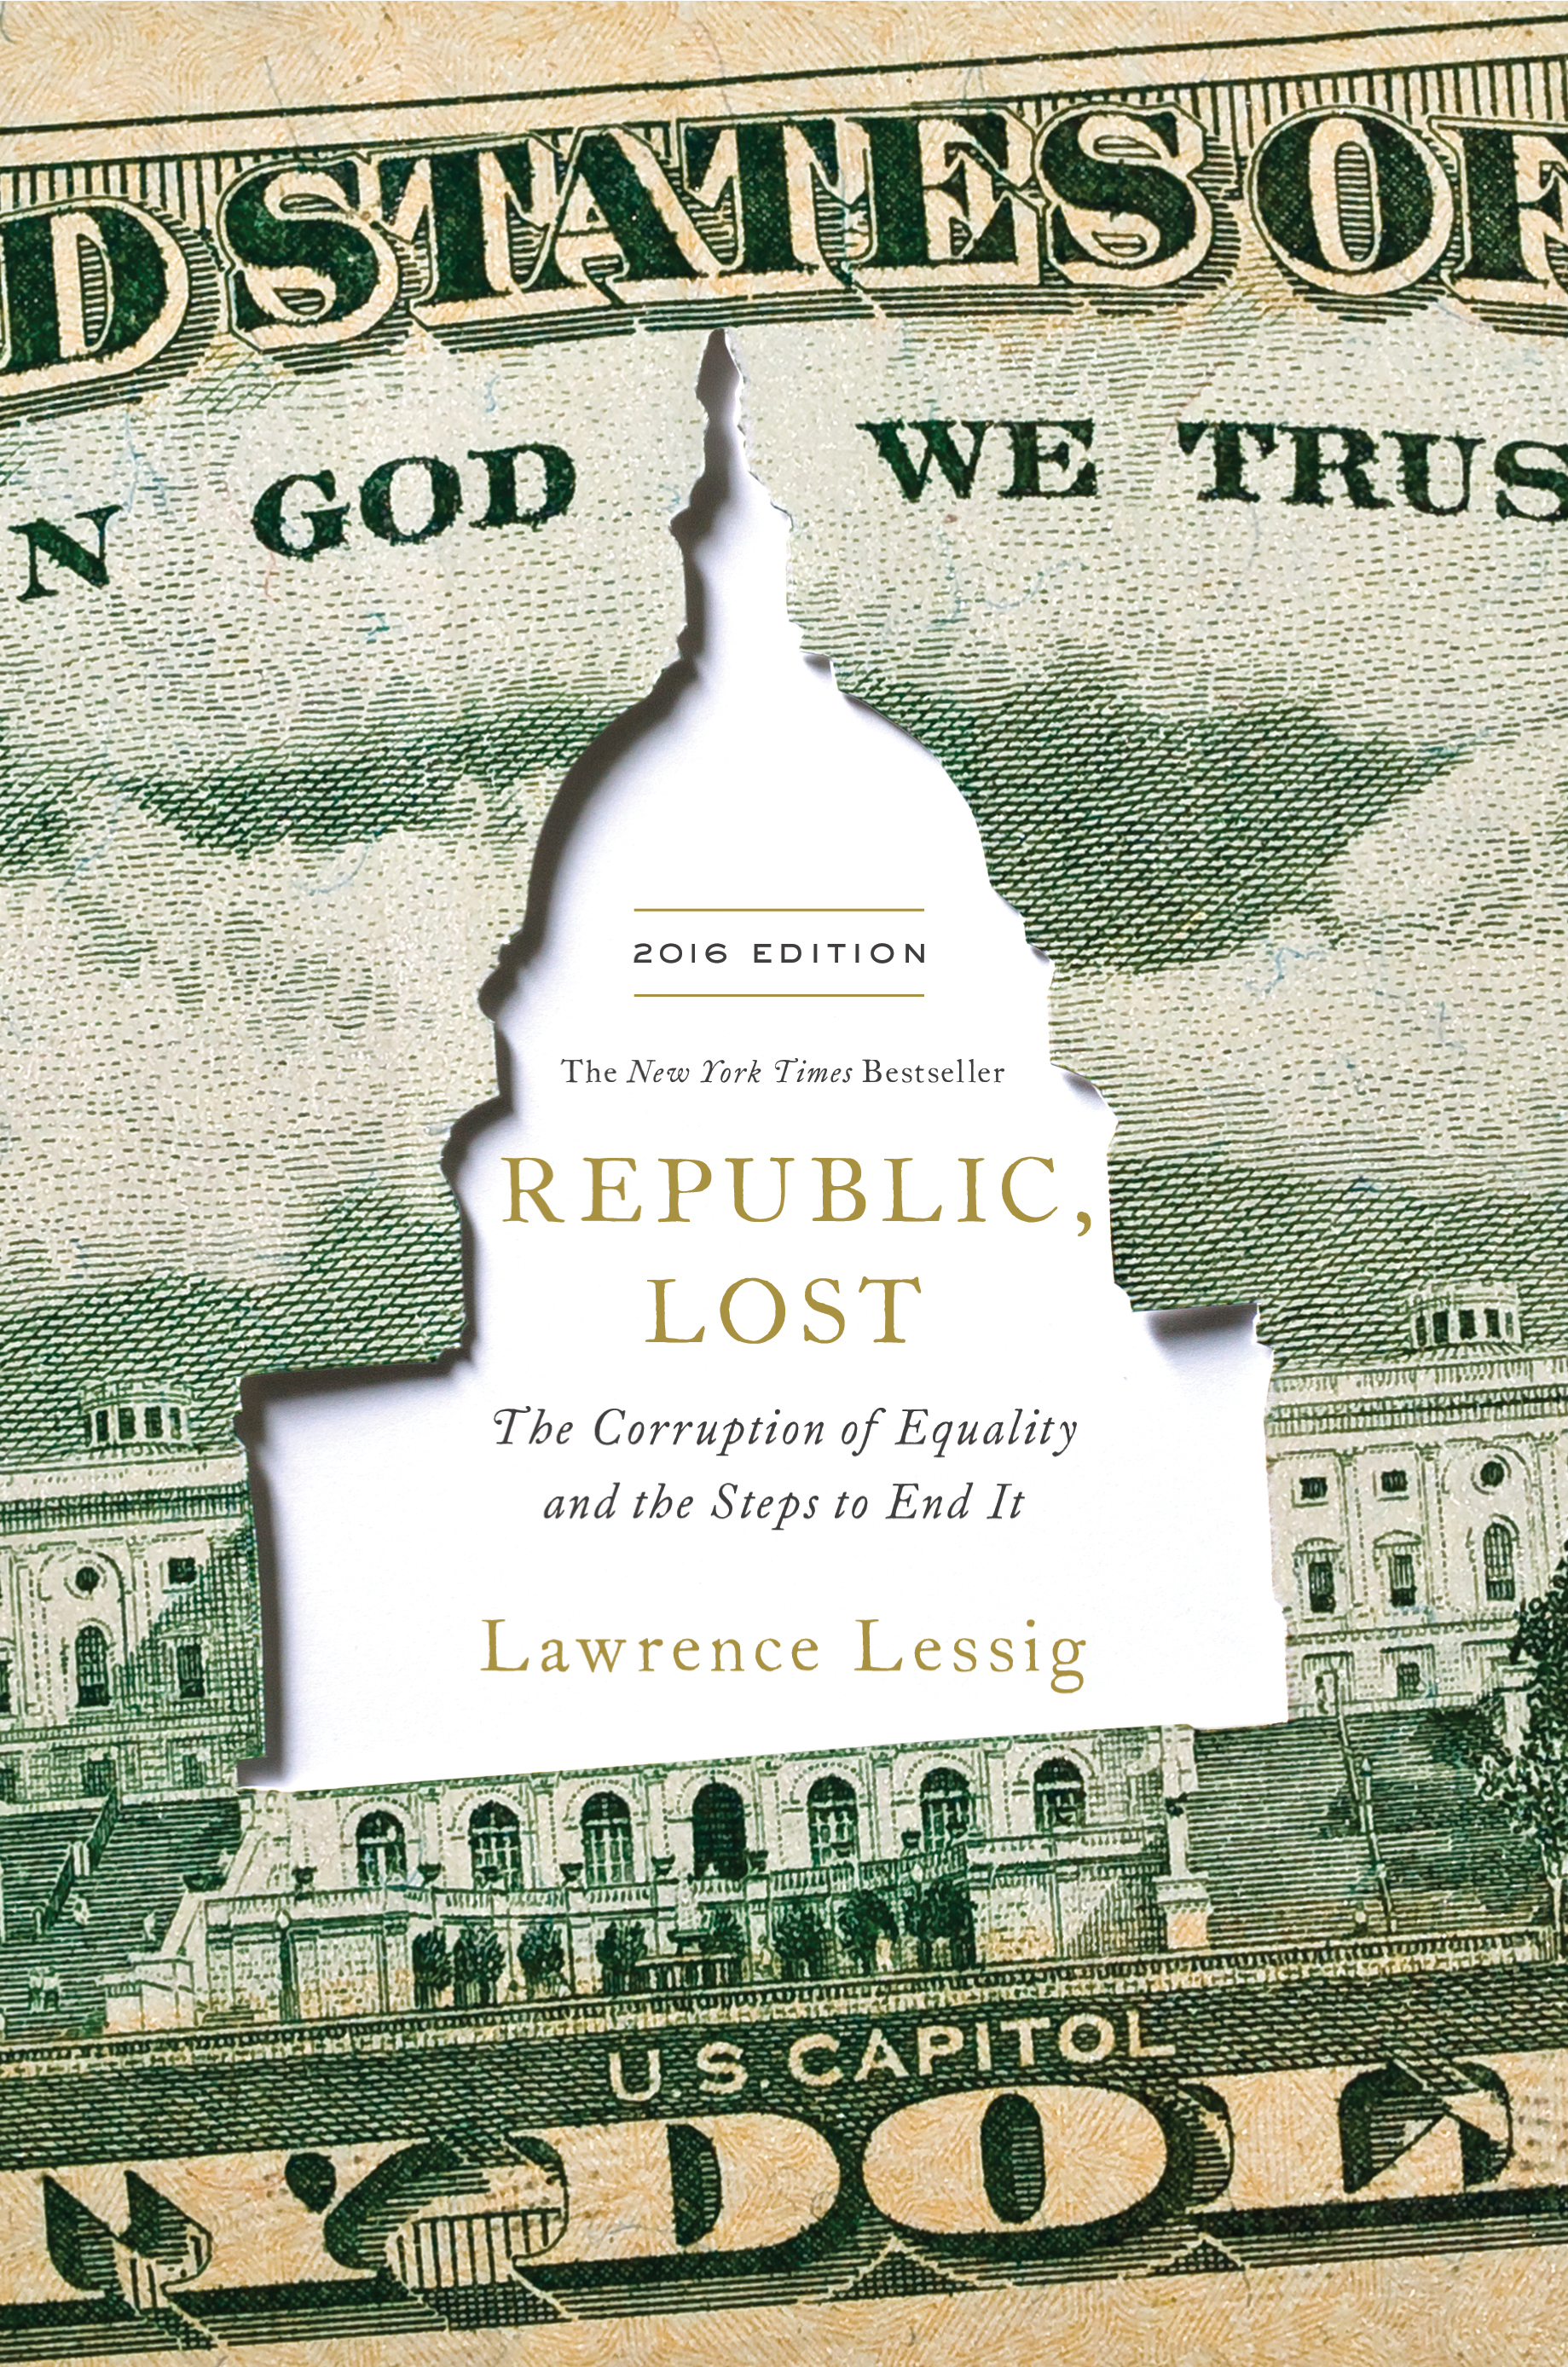 The cover of the forthcoming revised edition of Lessig's 2011 book, REPUBLIC, LOST.